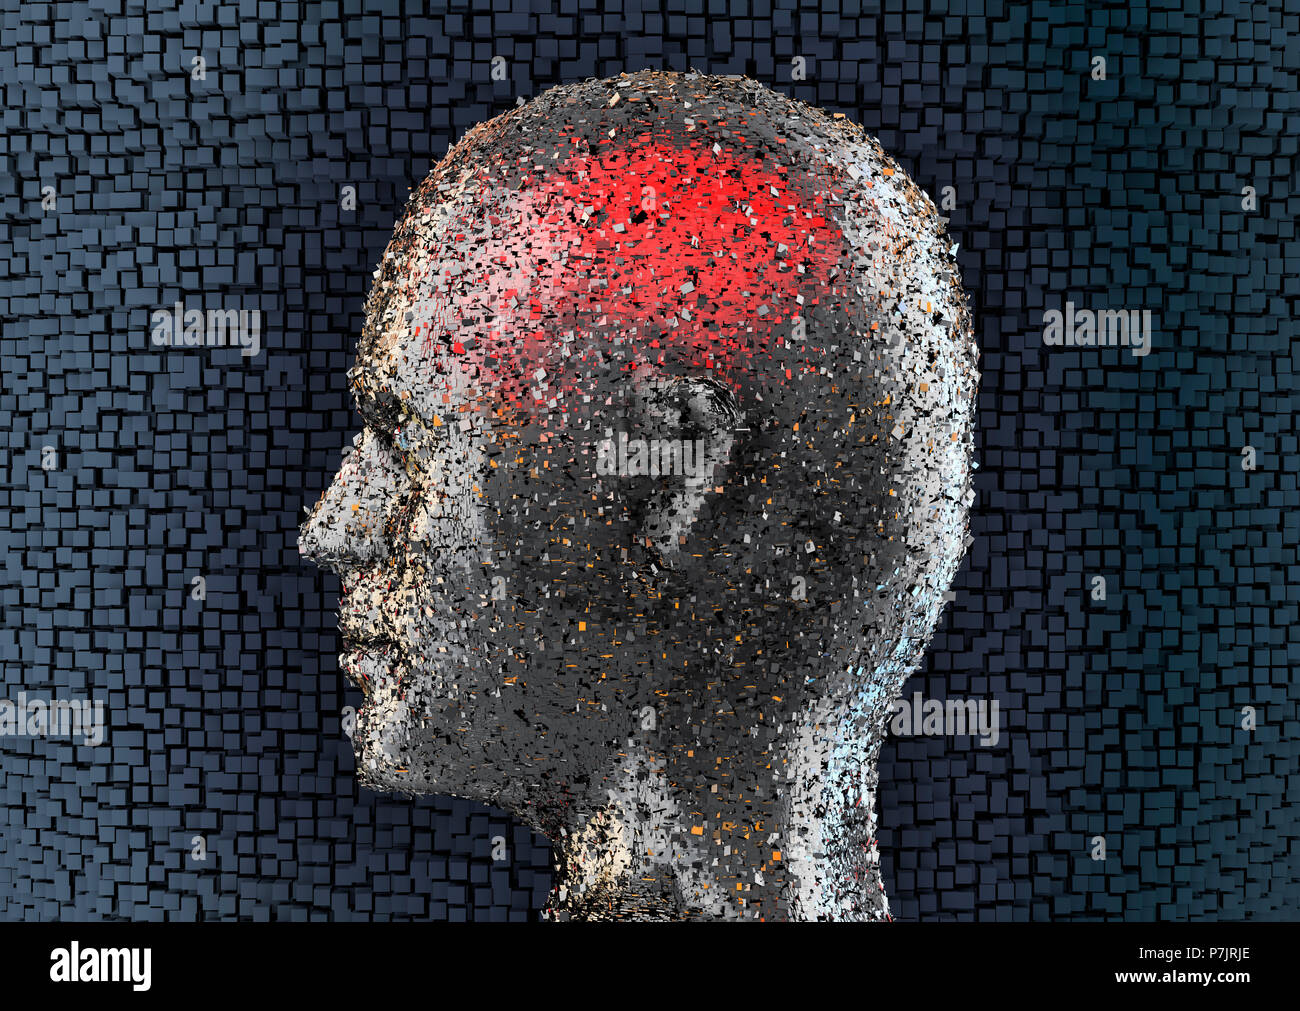 Artificial head made of small silver plate fragments, side view, dark blue squarish grid in the background - Stock Image